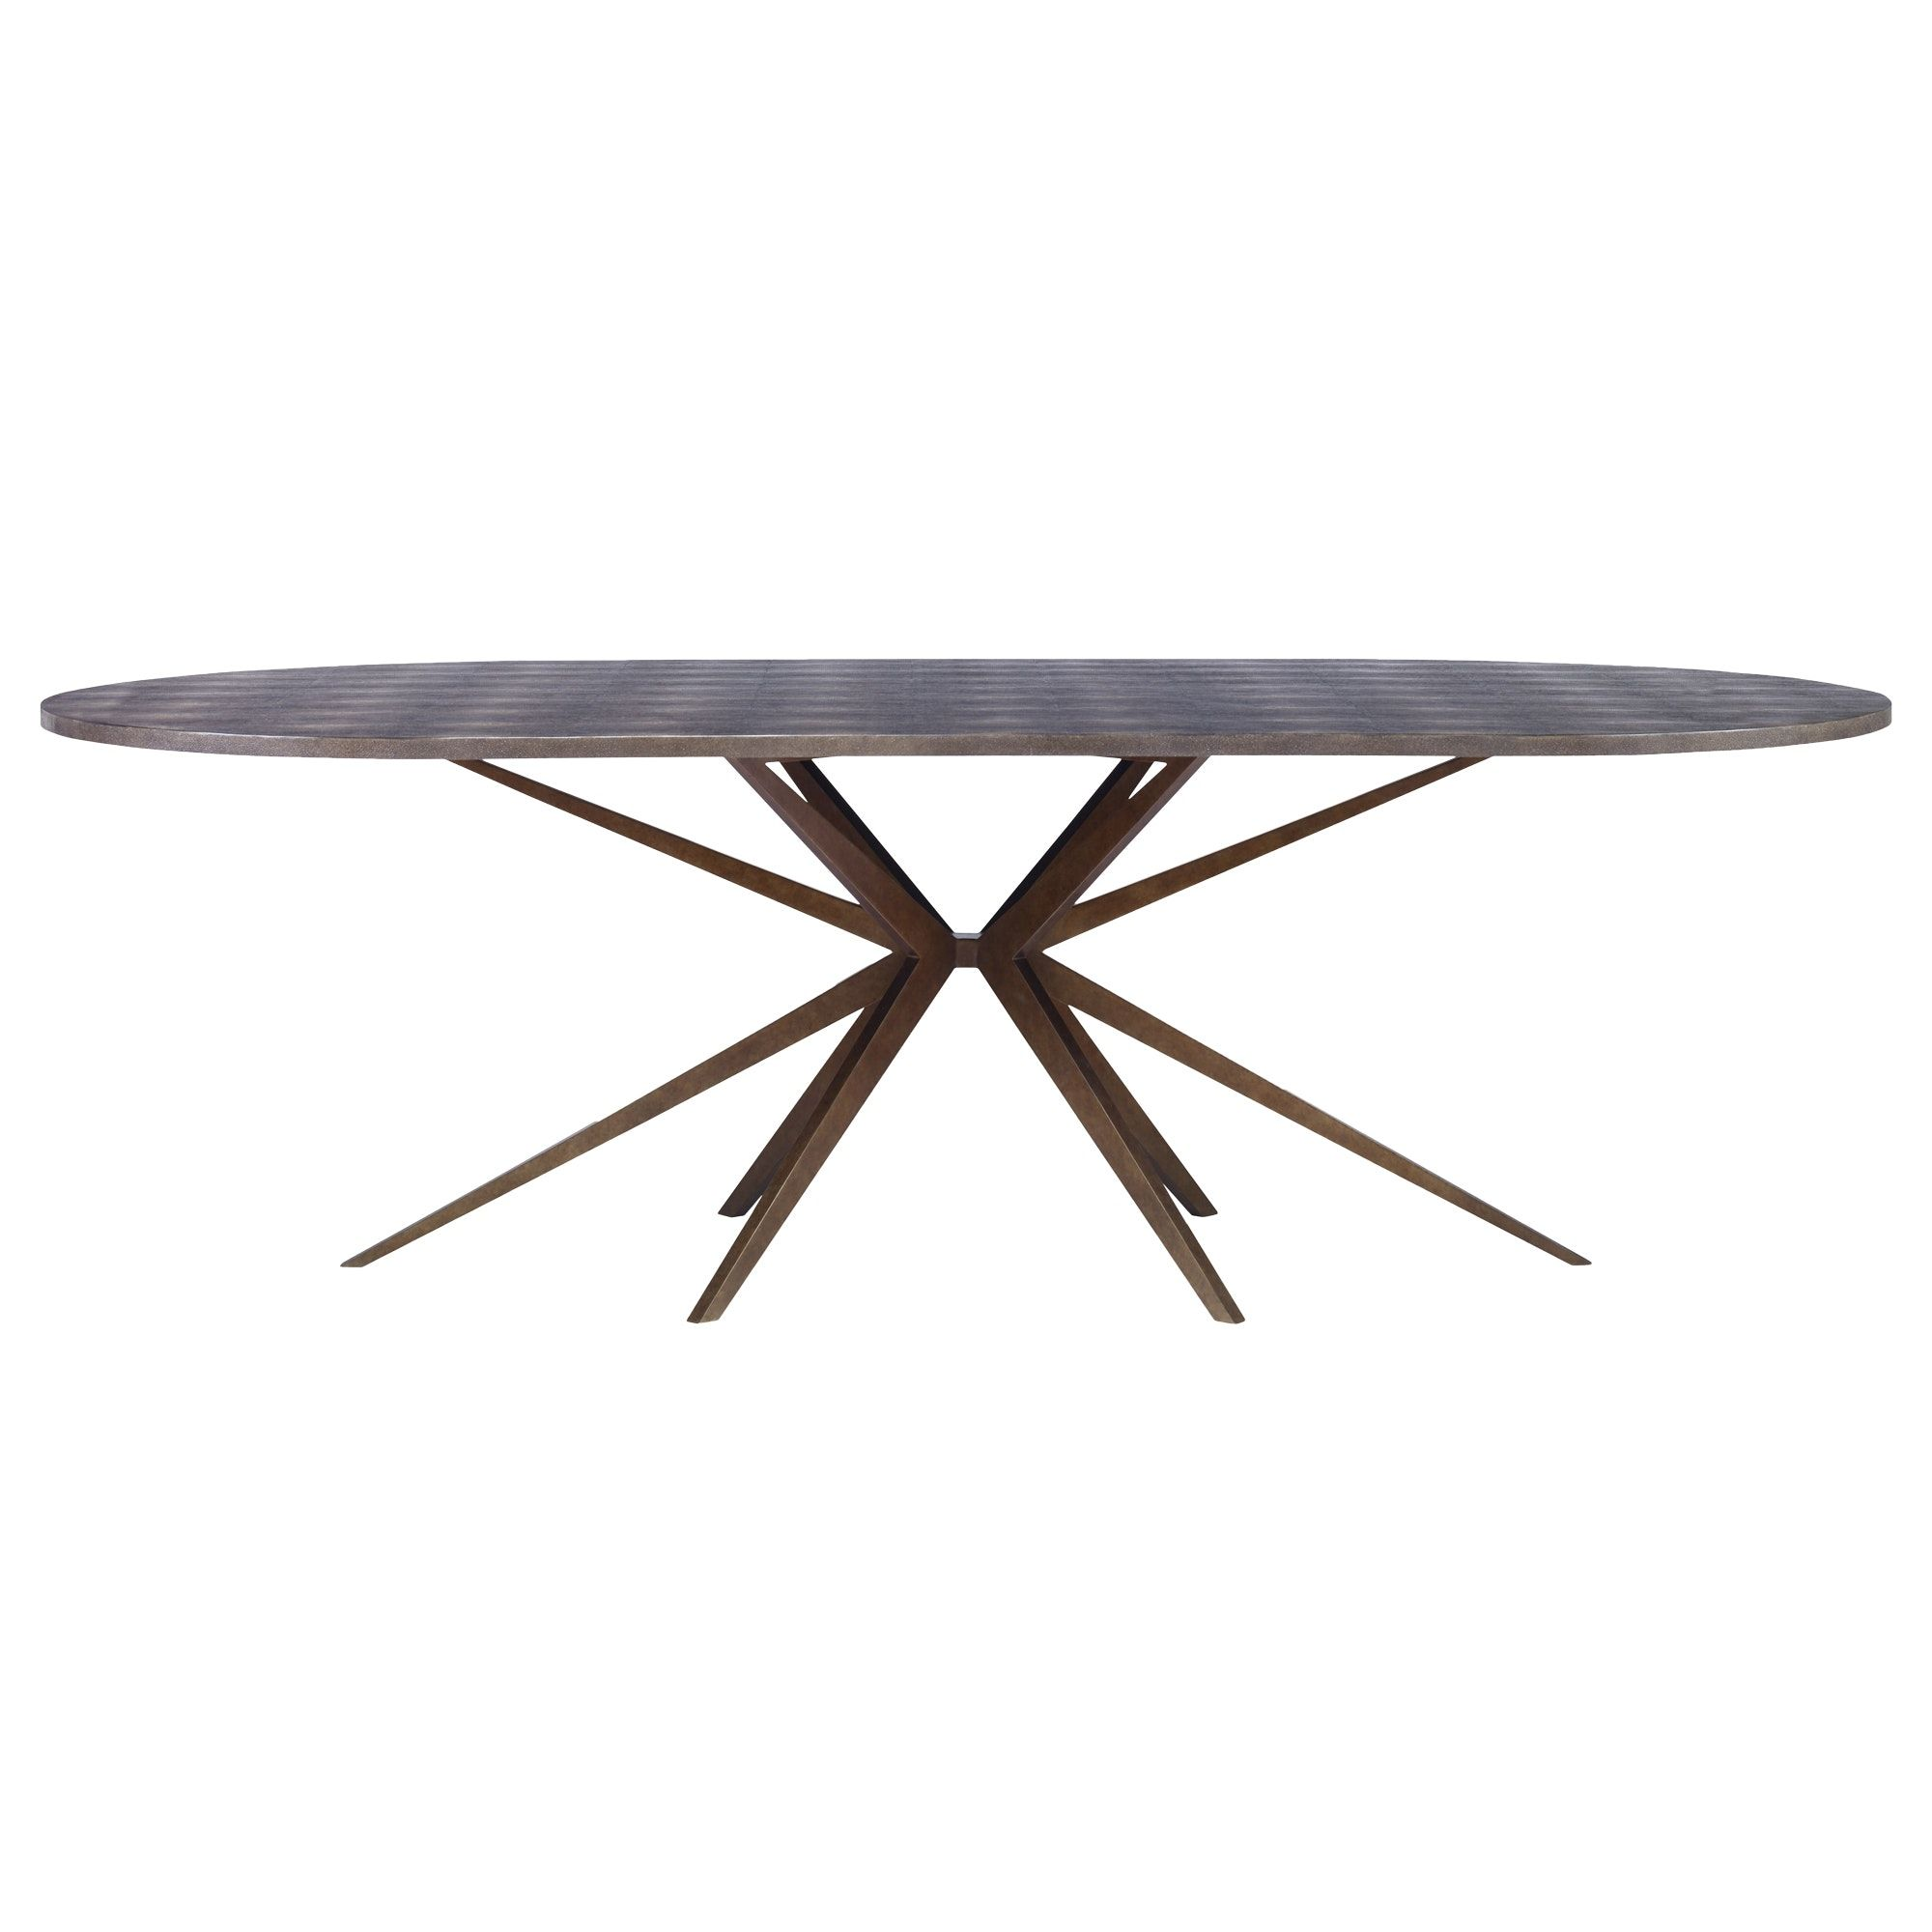 buy atlantis oval dining table by mr brown london made to order rh pinterest com